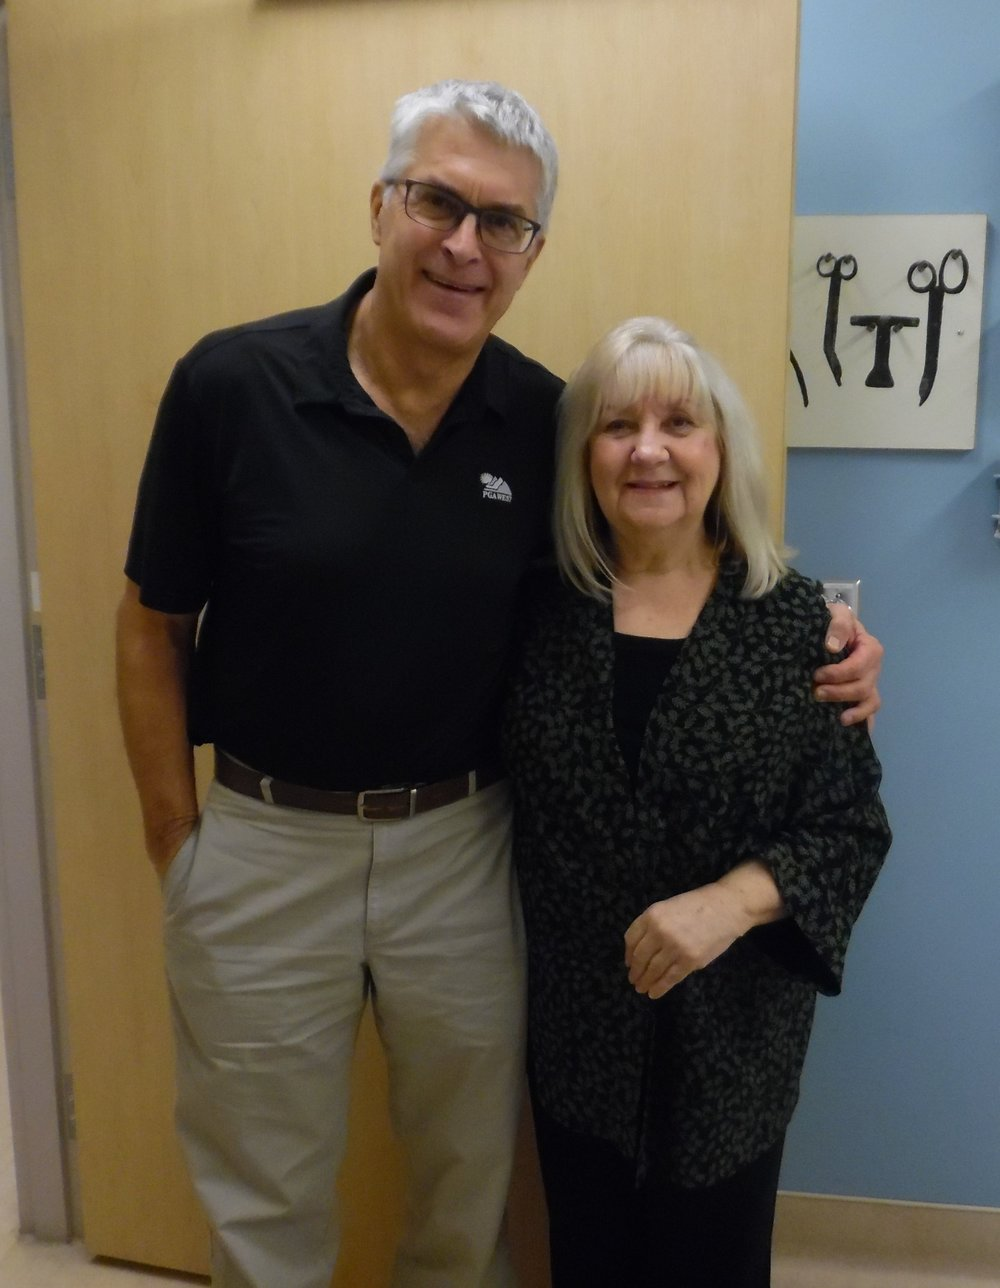 Dr. de Beer graciously posed for a photo with his patient, Carolyn MacArthur, Editor of SIDEBURNS Magazine.